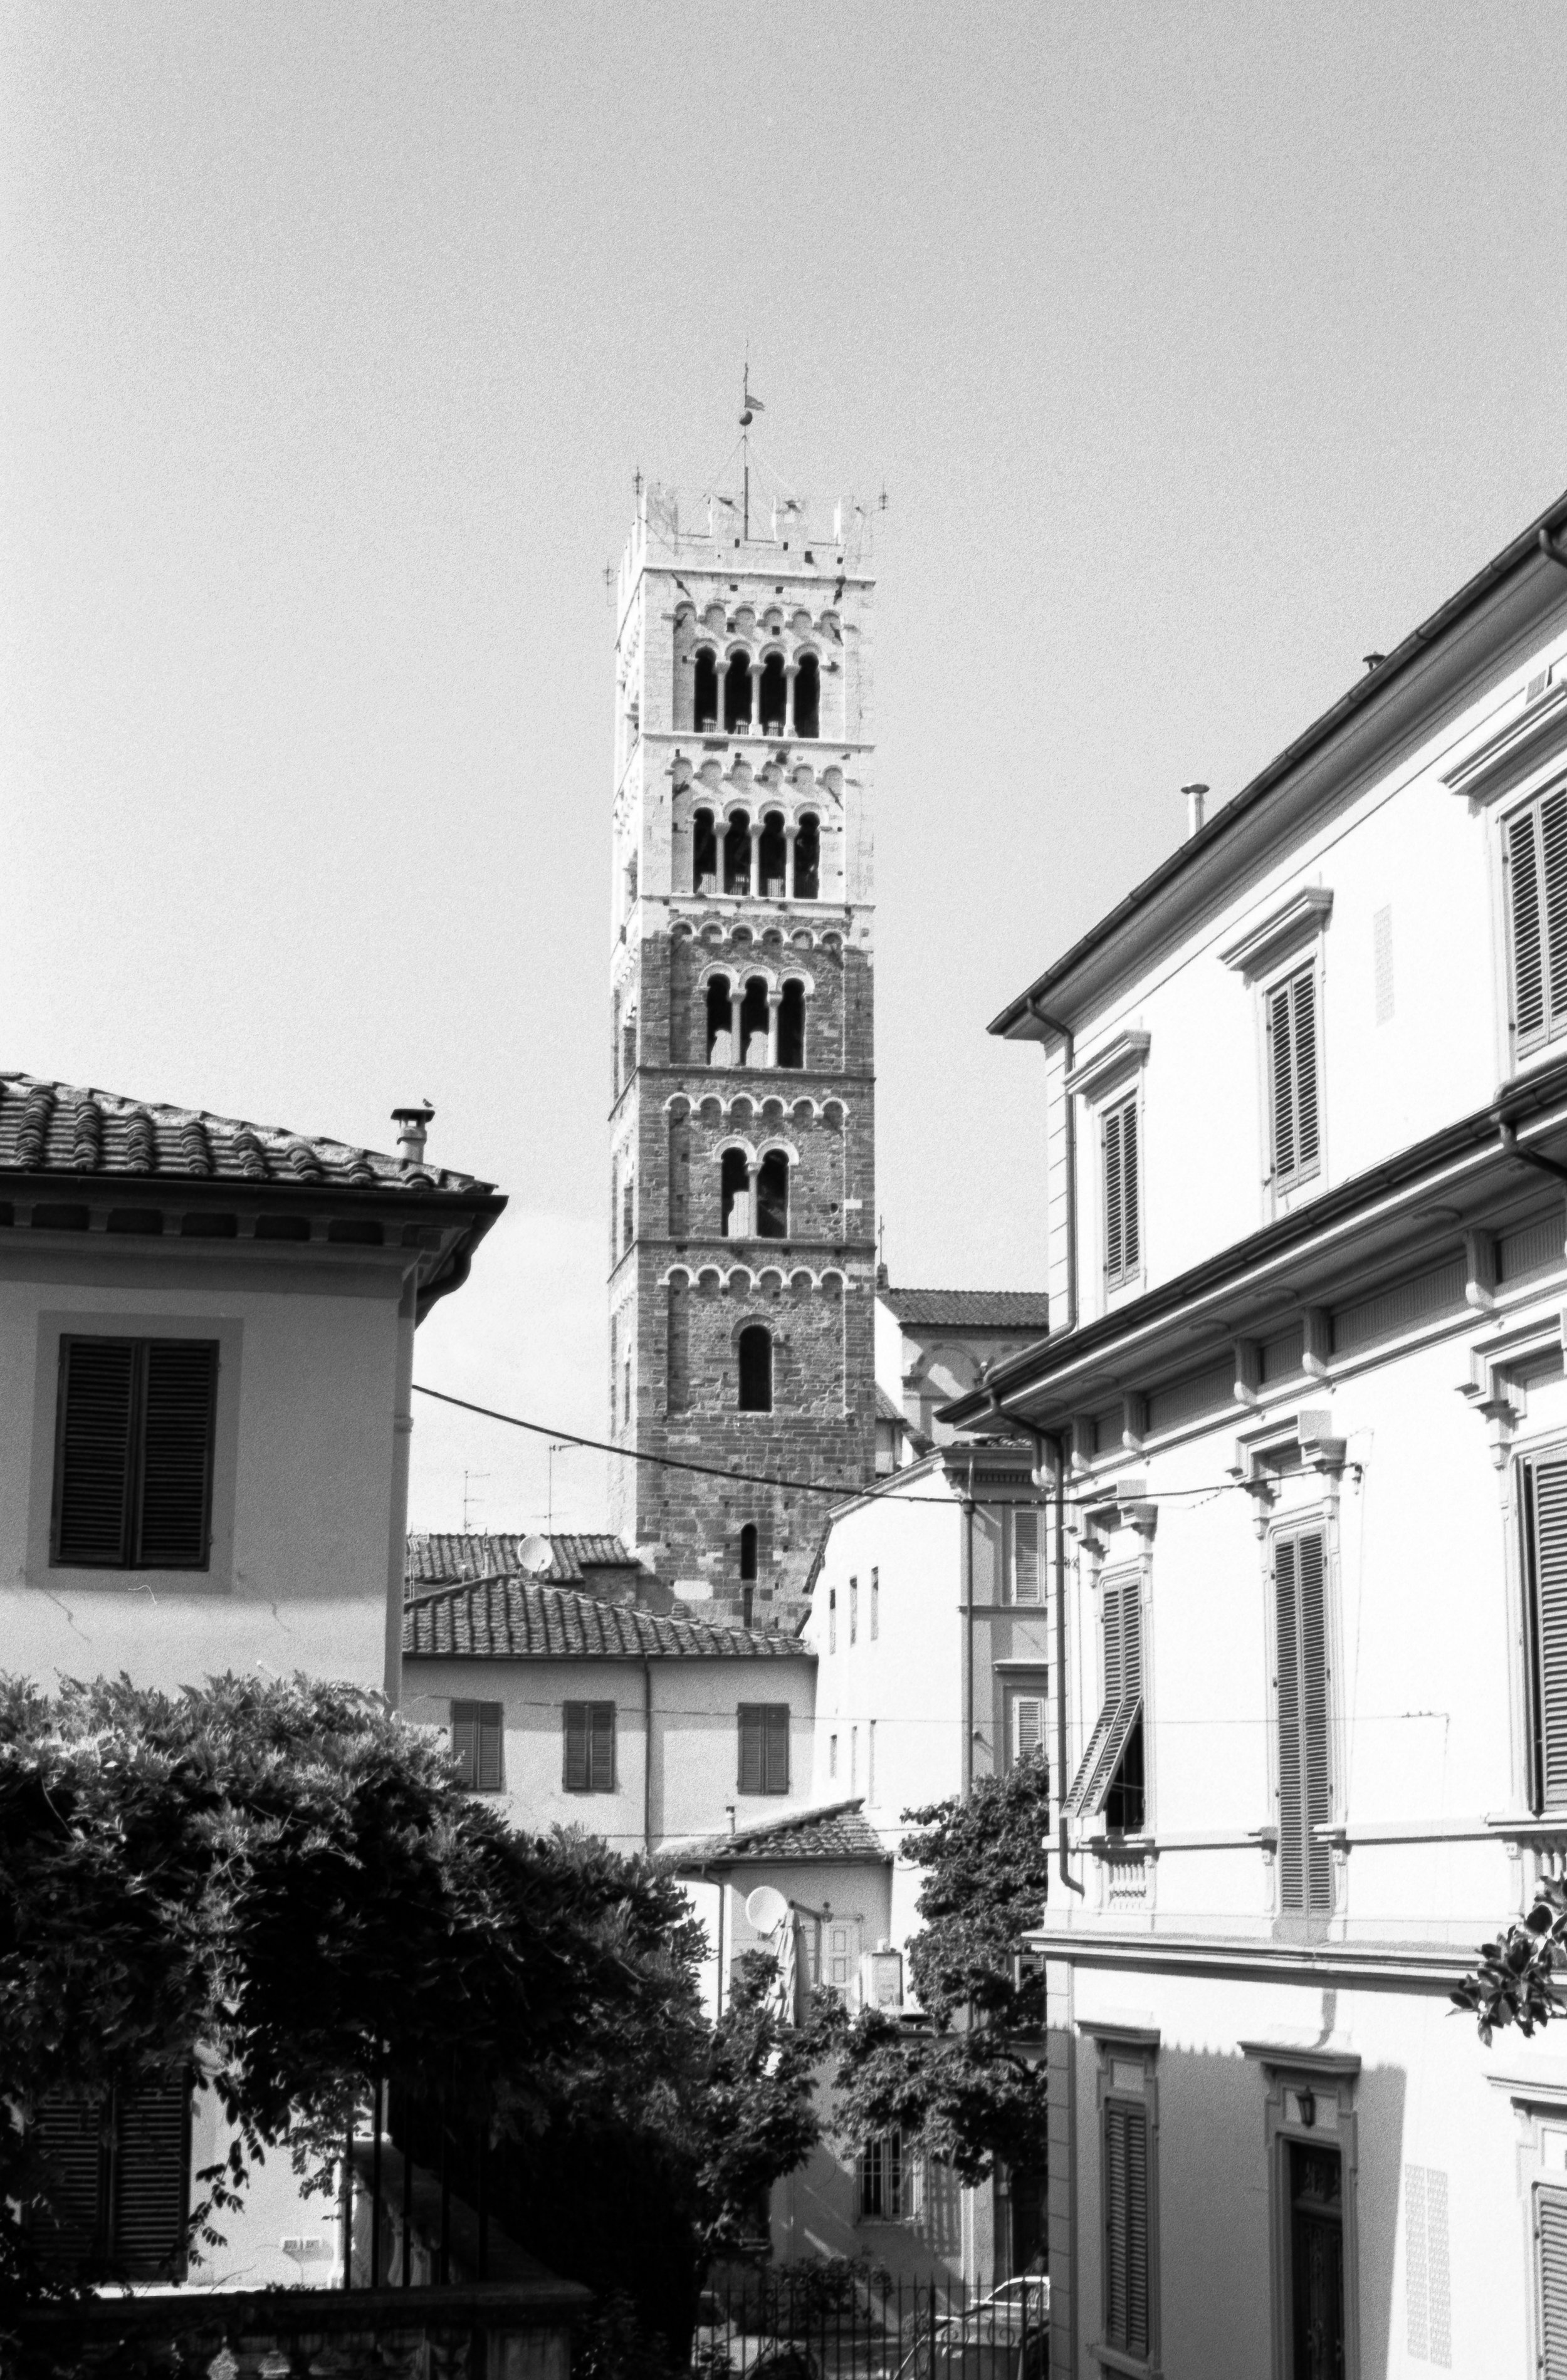 San Michele in Foro, Lucca. Italy. 2019.